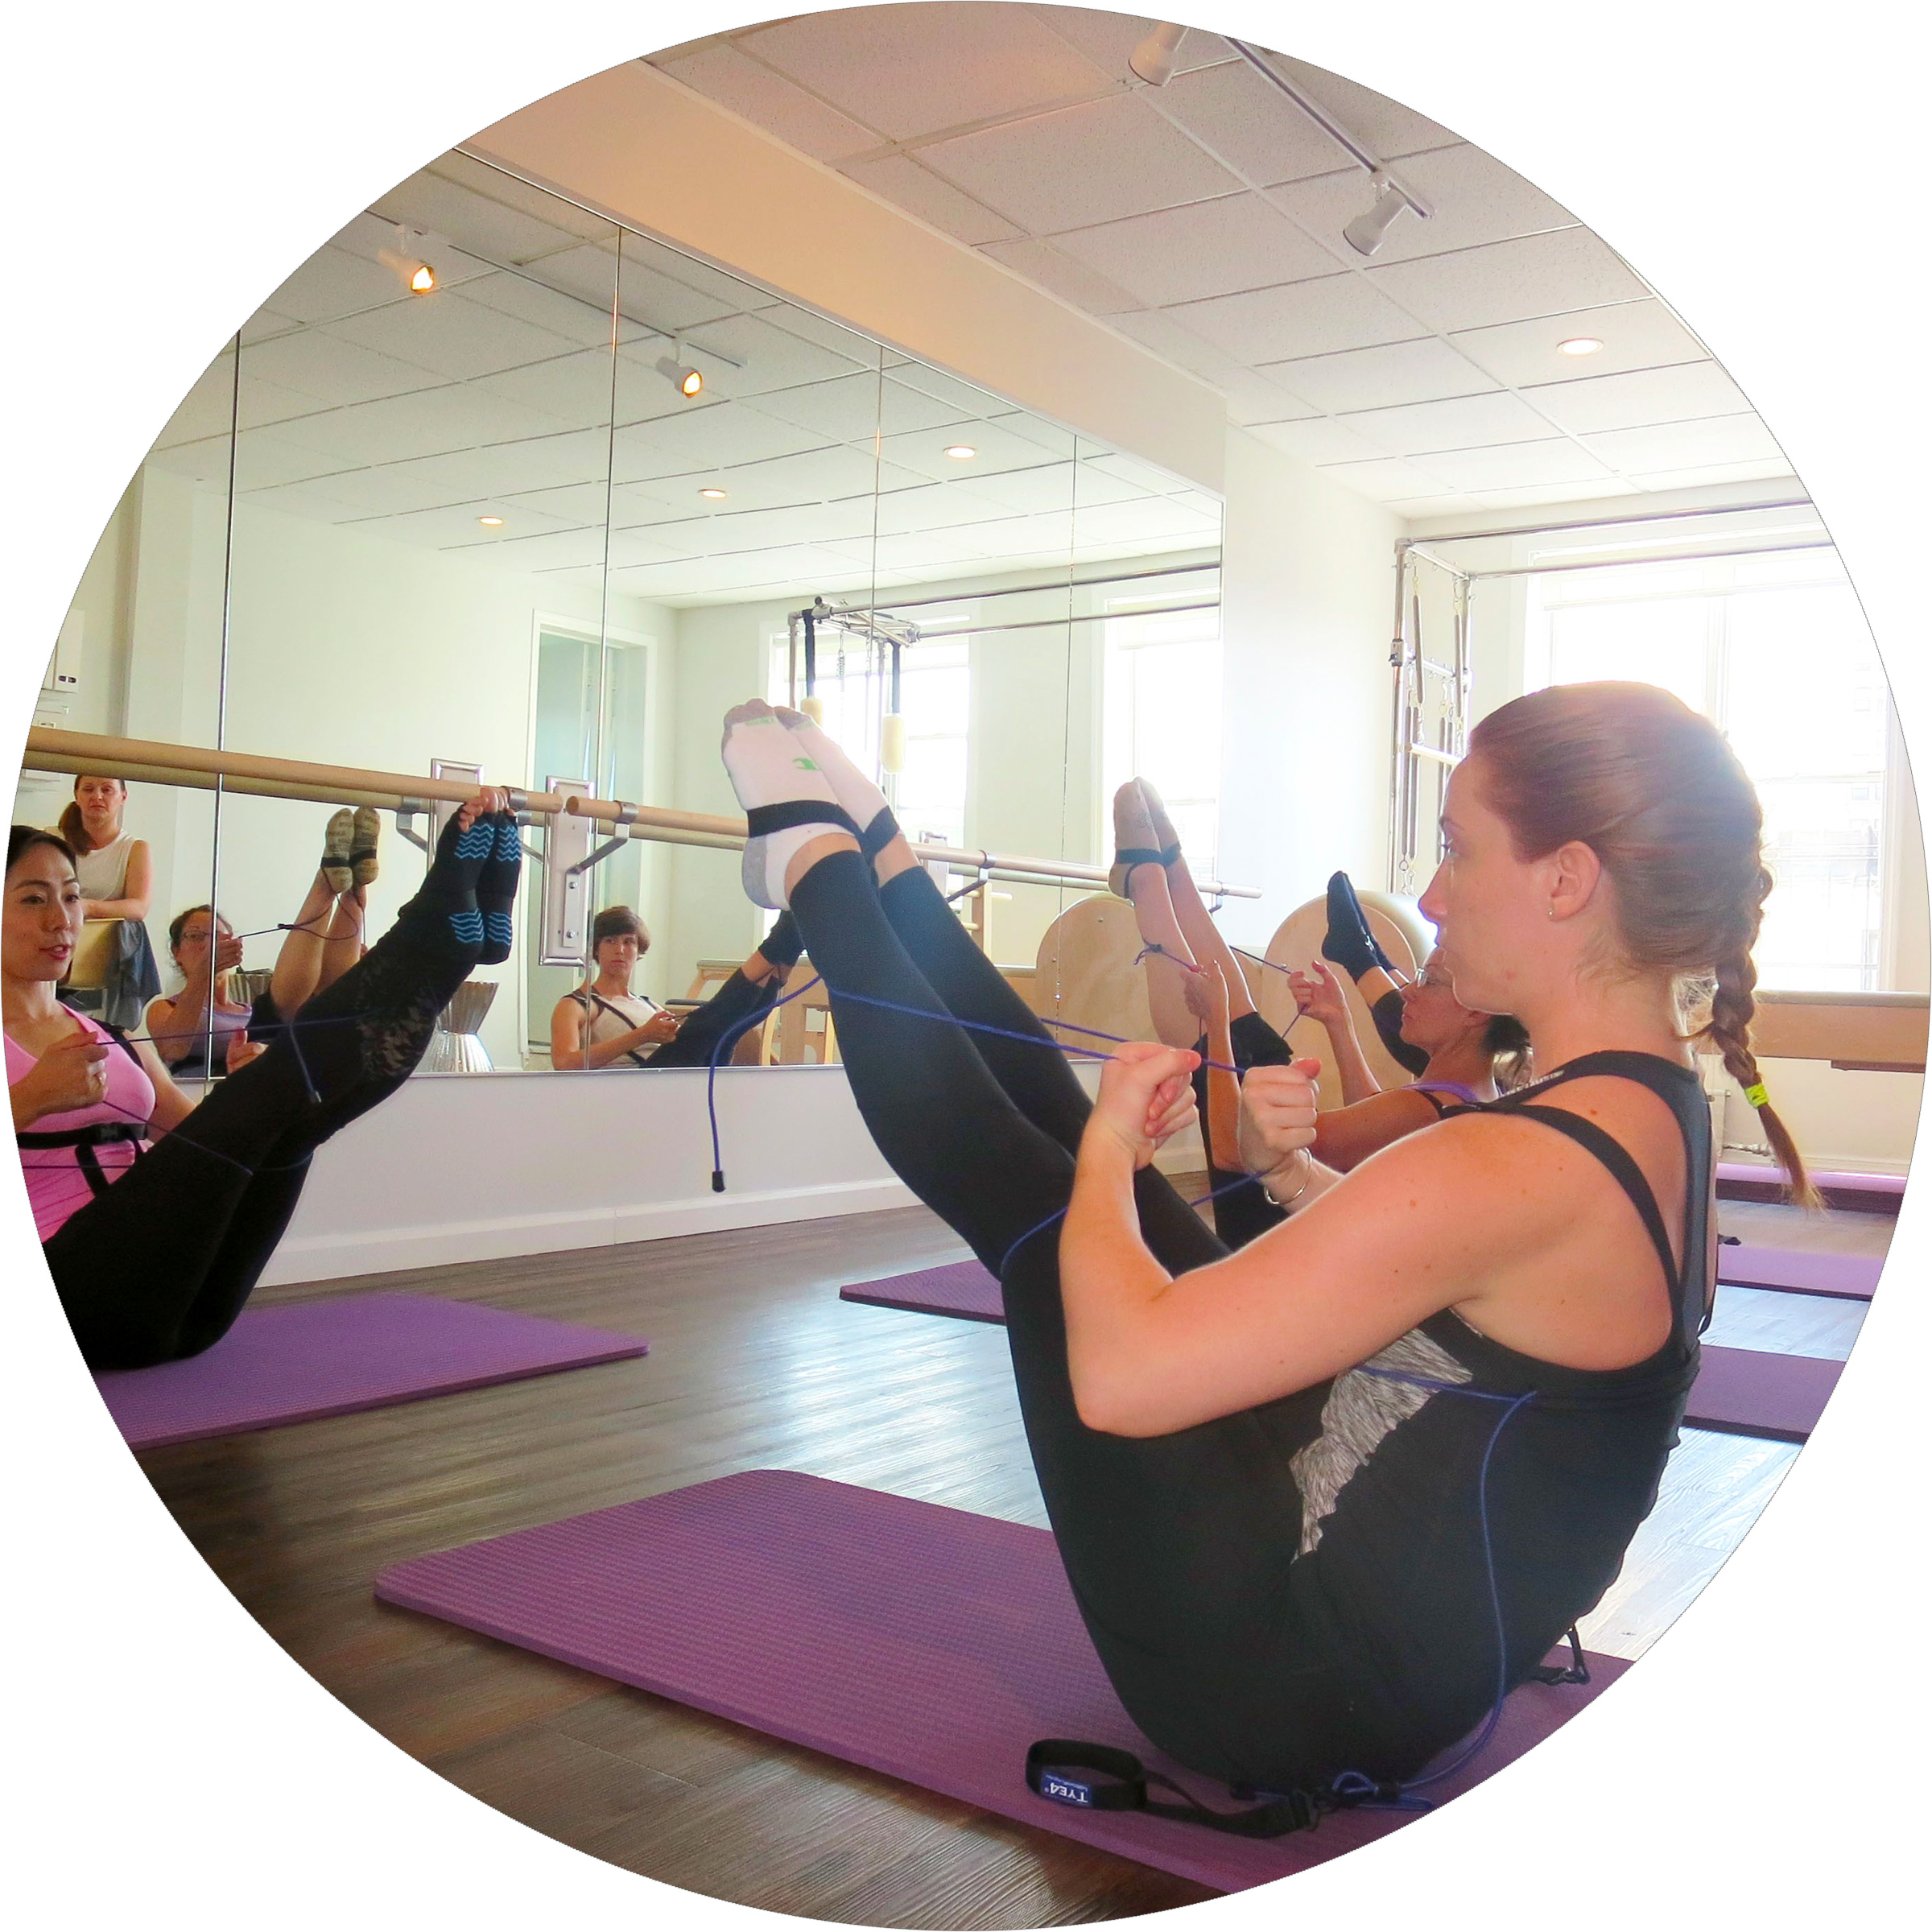 Tye4® training at Bklyn Pilates, New York